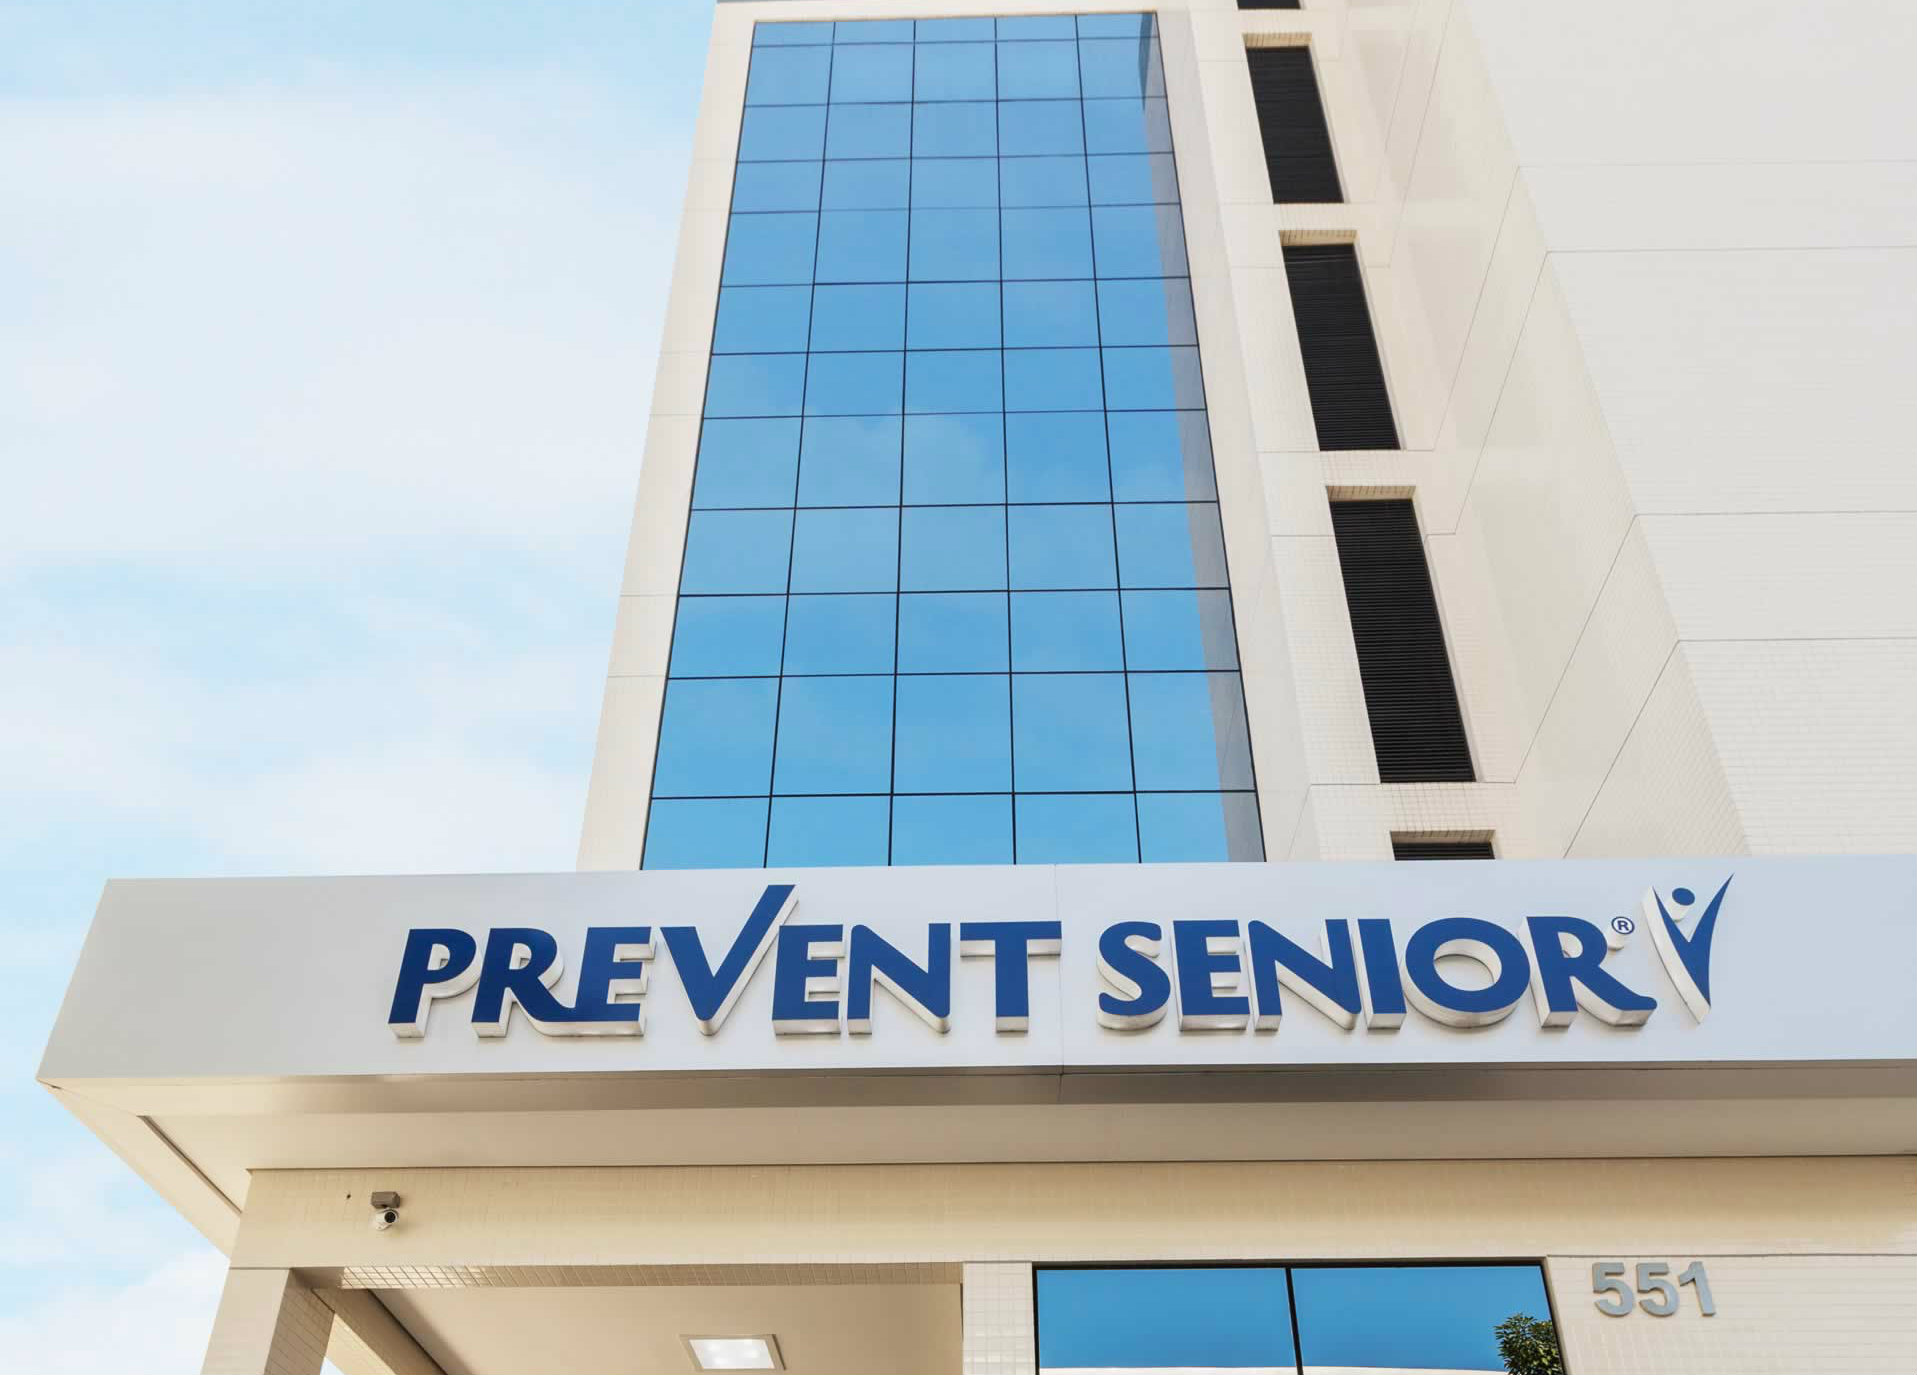 Fachada de hospital da Prevent Senior no Tatuapé